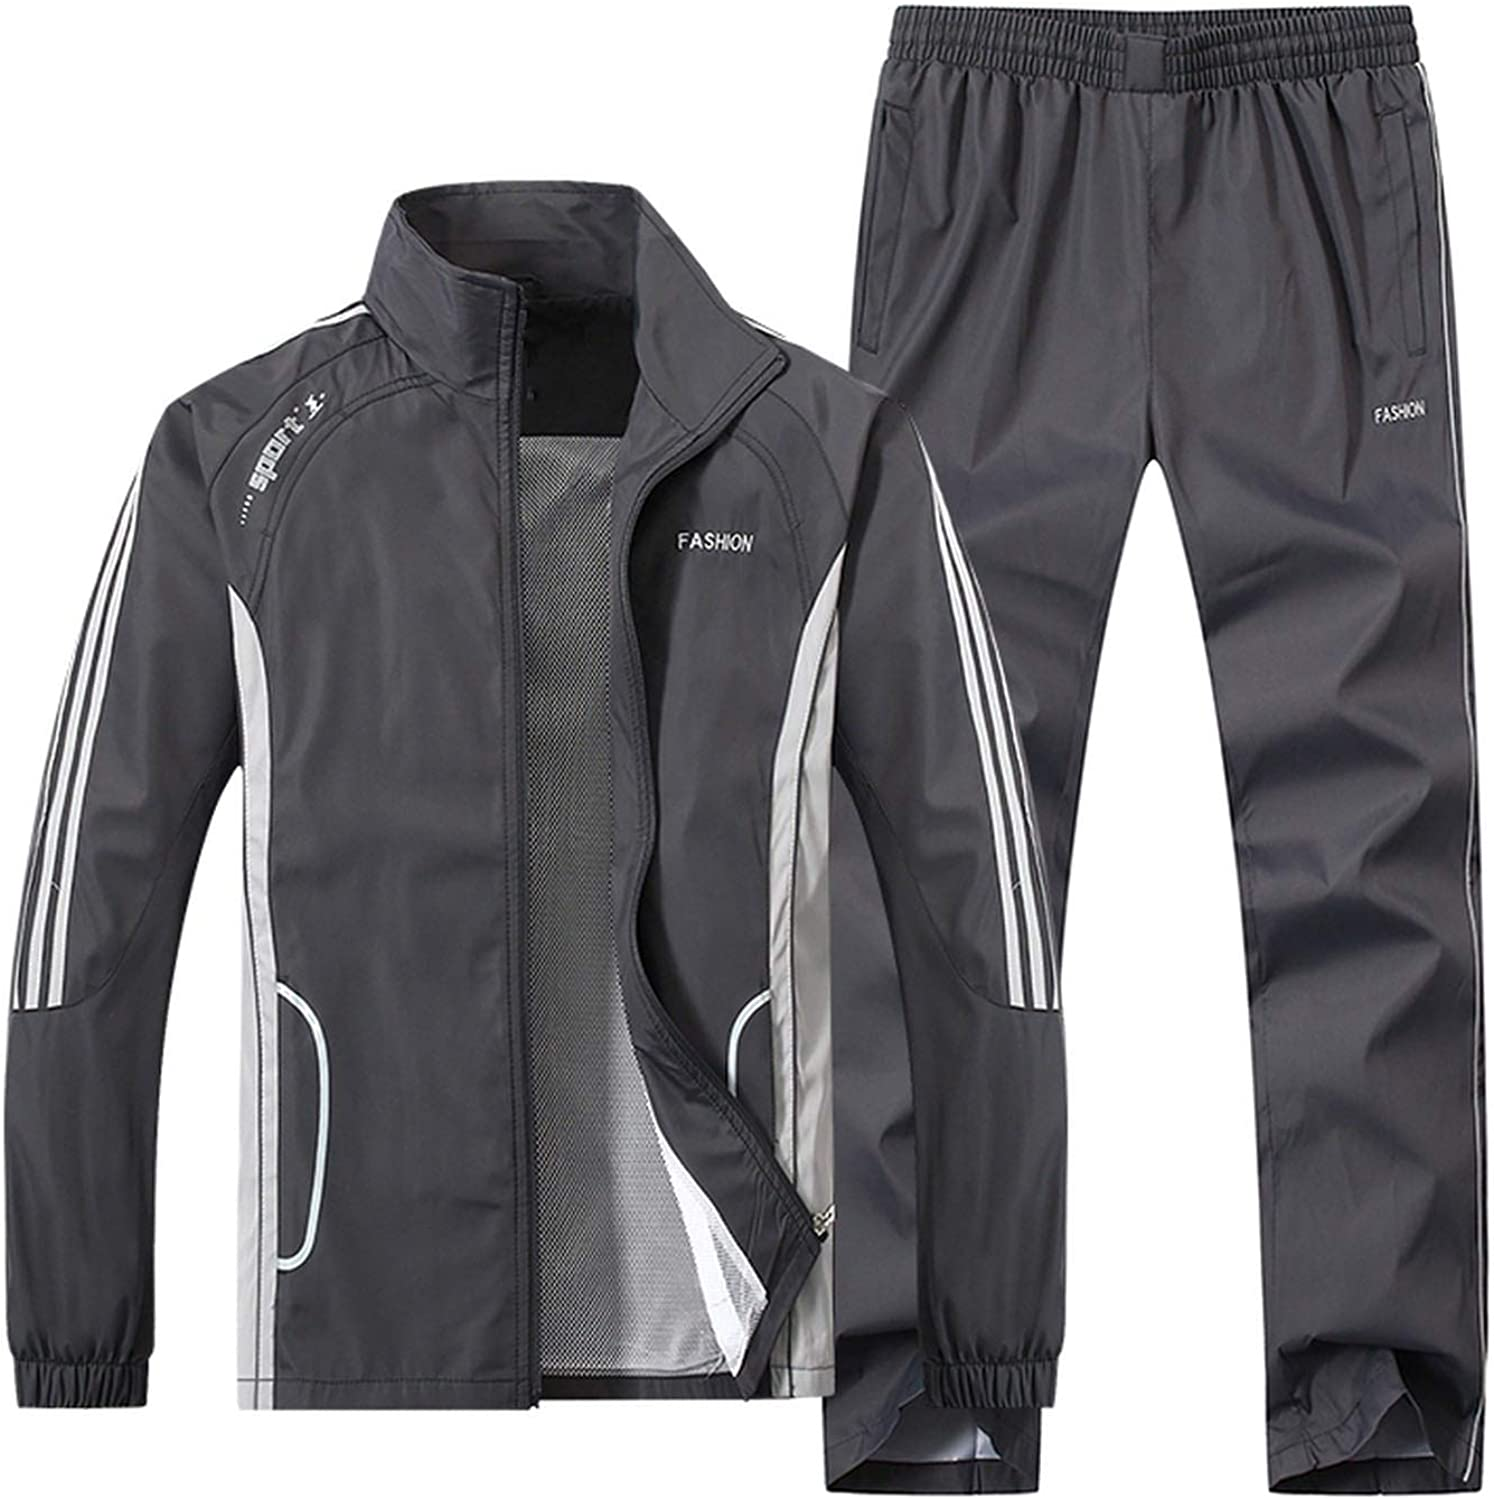 Spring Autumn Tracksuit Men Two Piece Clothing Sets Casual Track Suit Sportswear Sweatsuits YB-T268